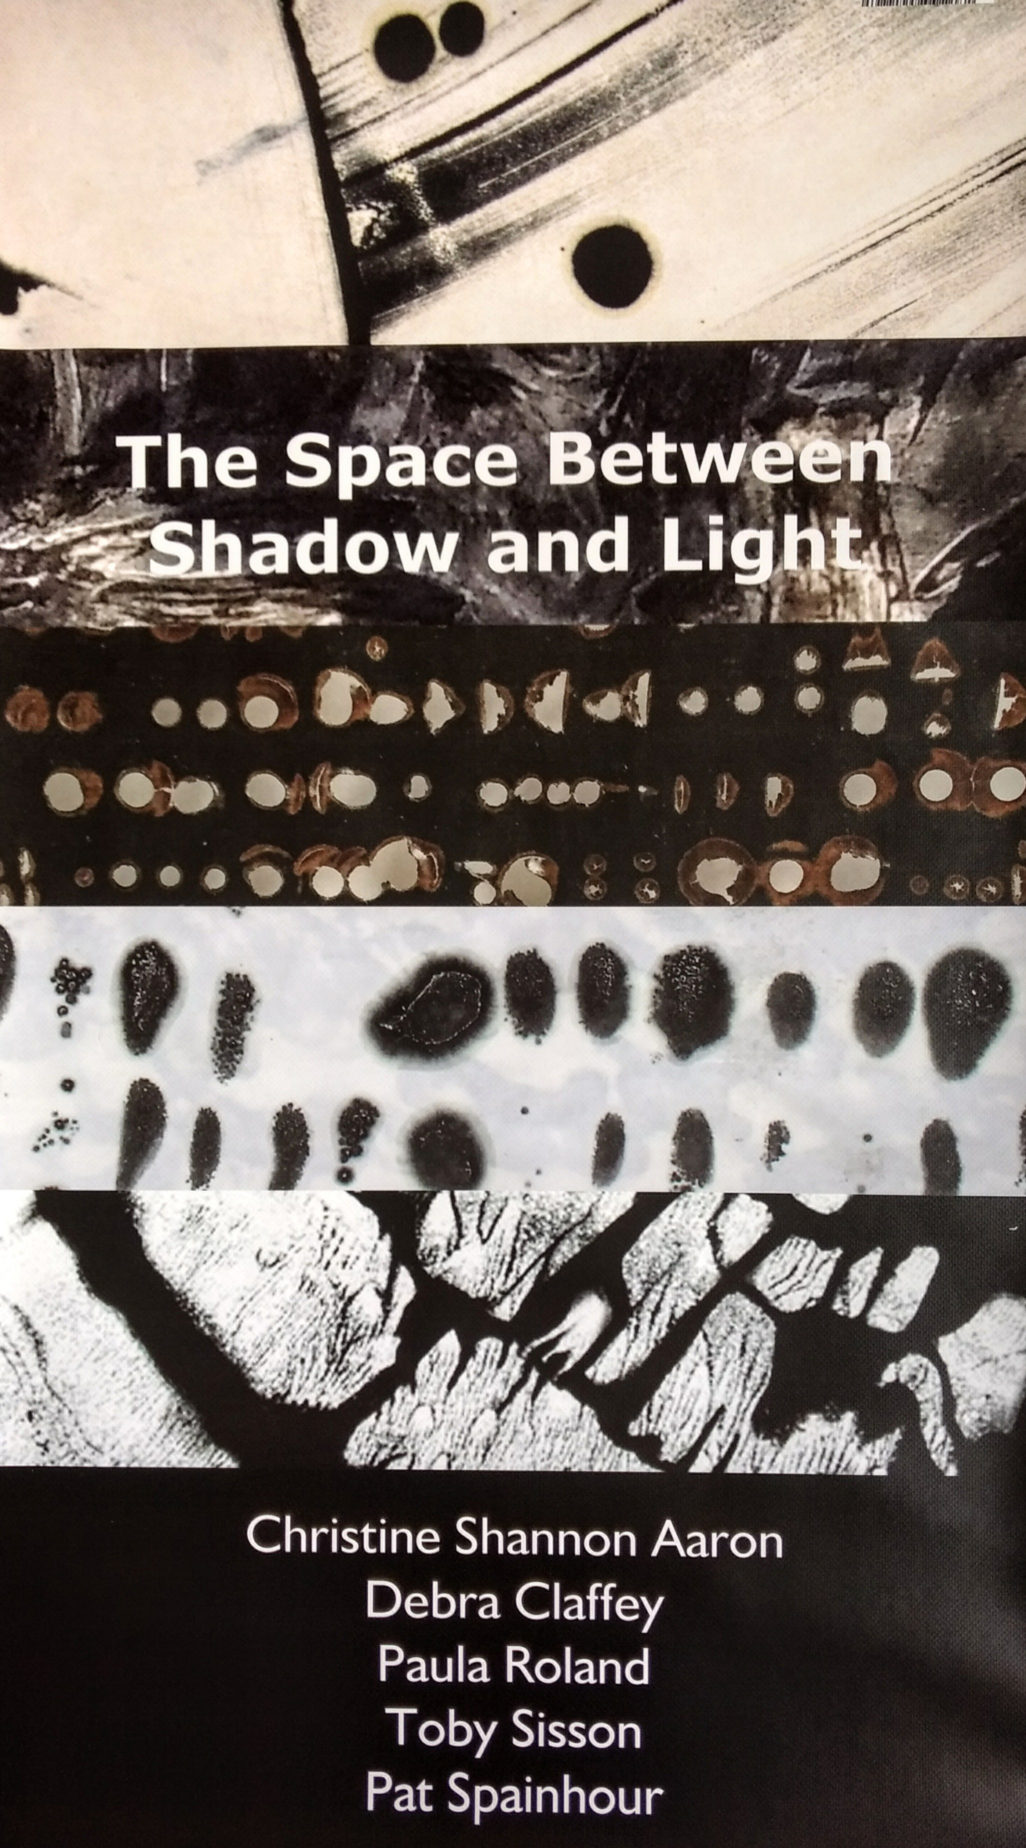 The Space Between Shadow and Light